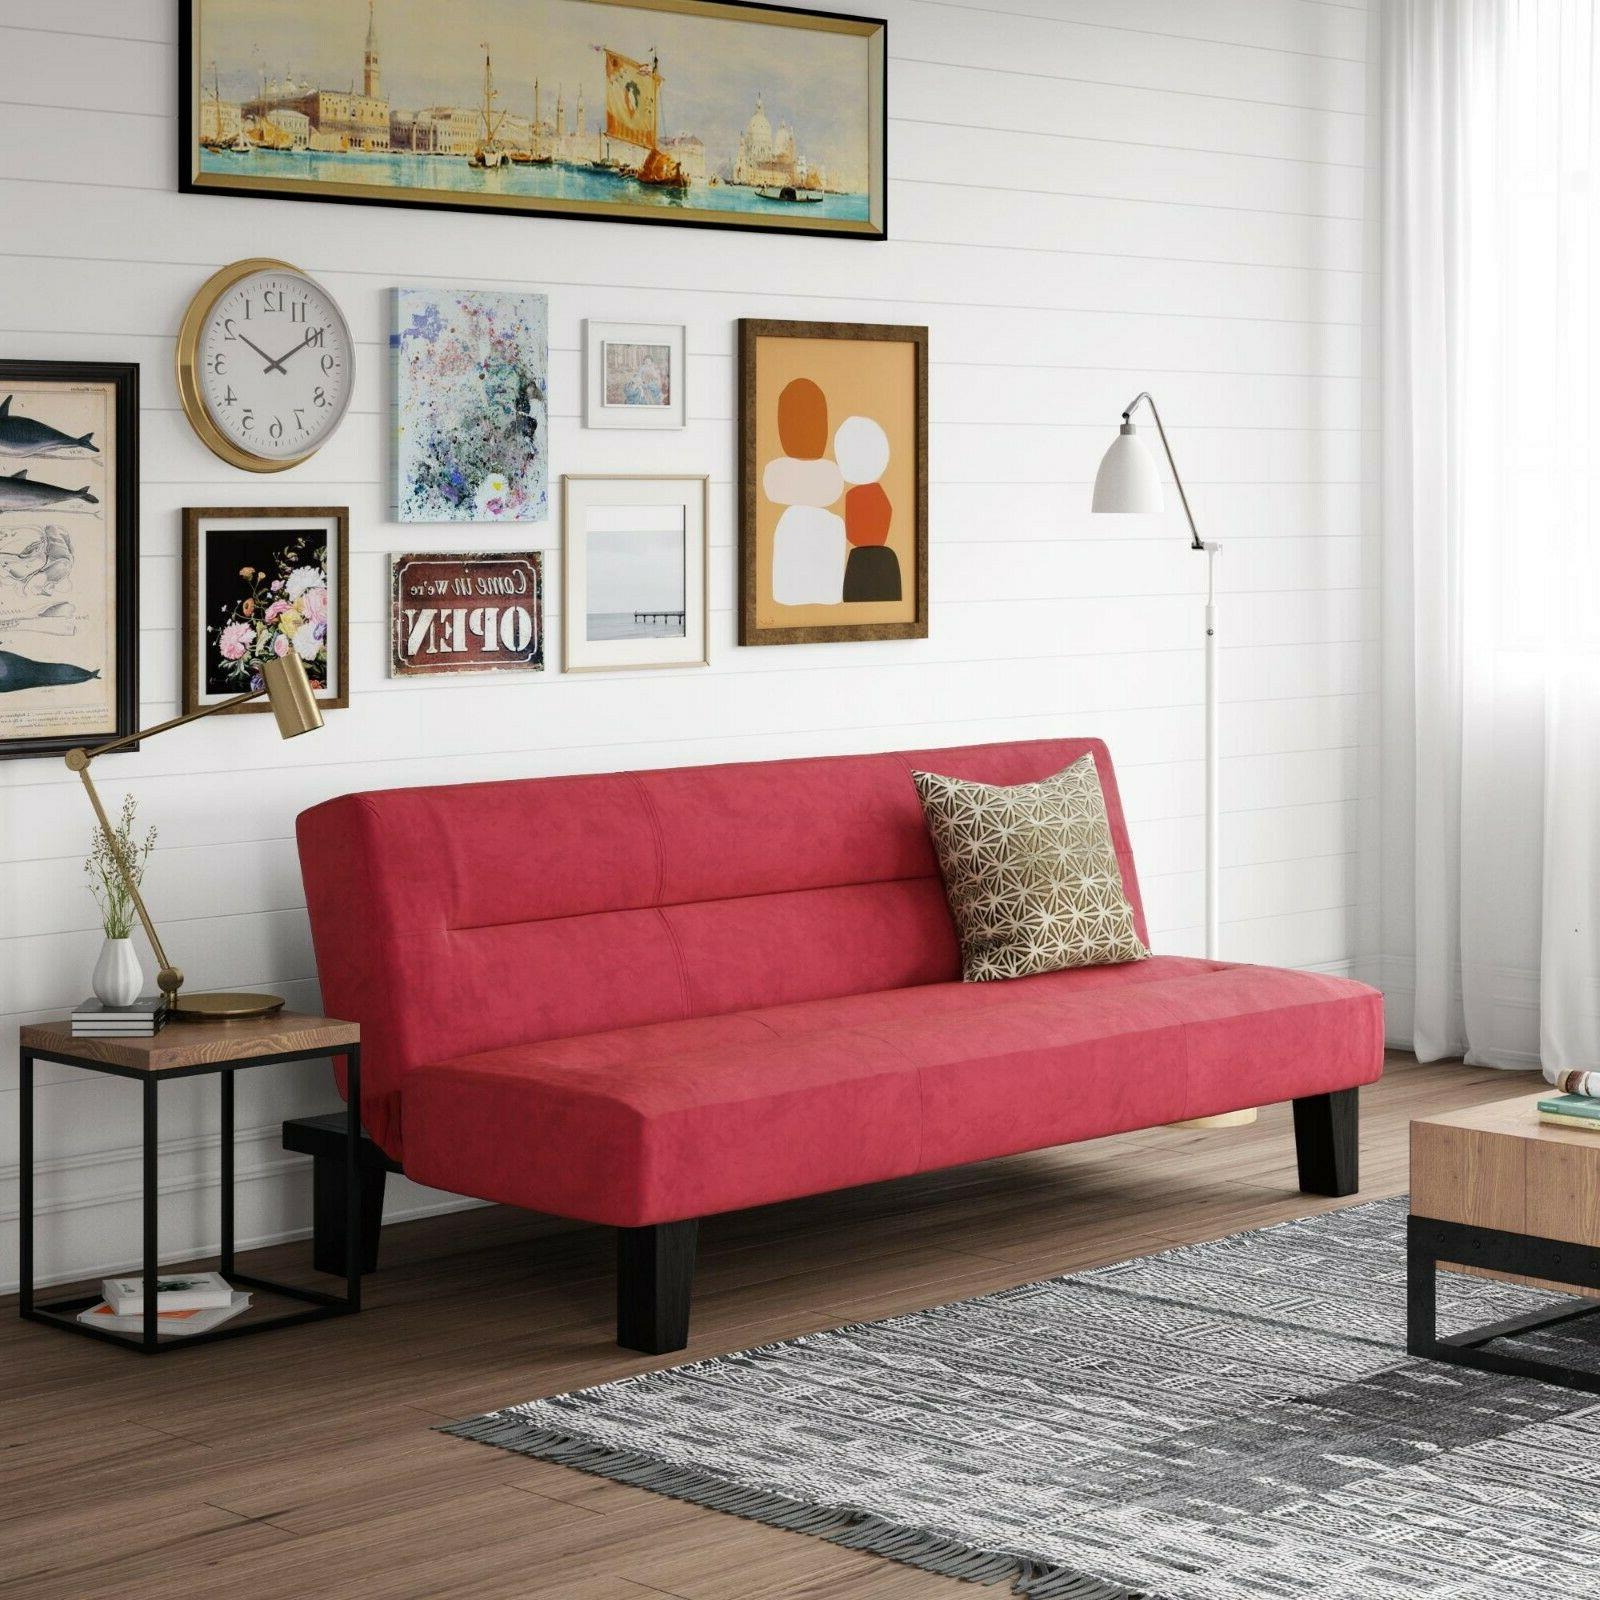 convertible red sofa couch sleeper guest bed